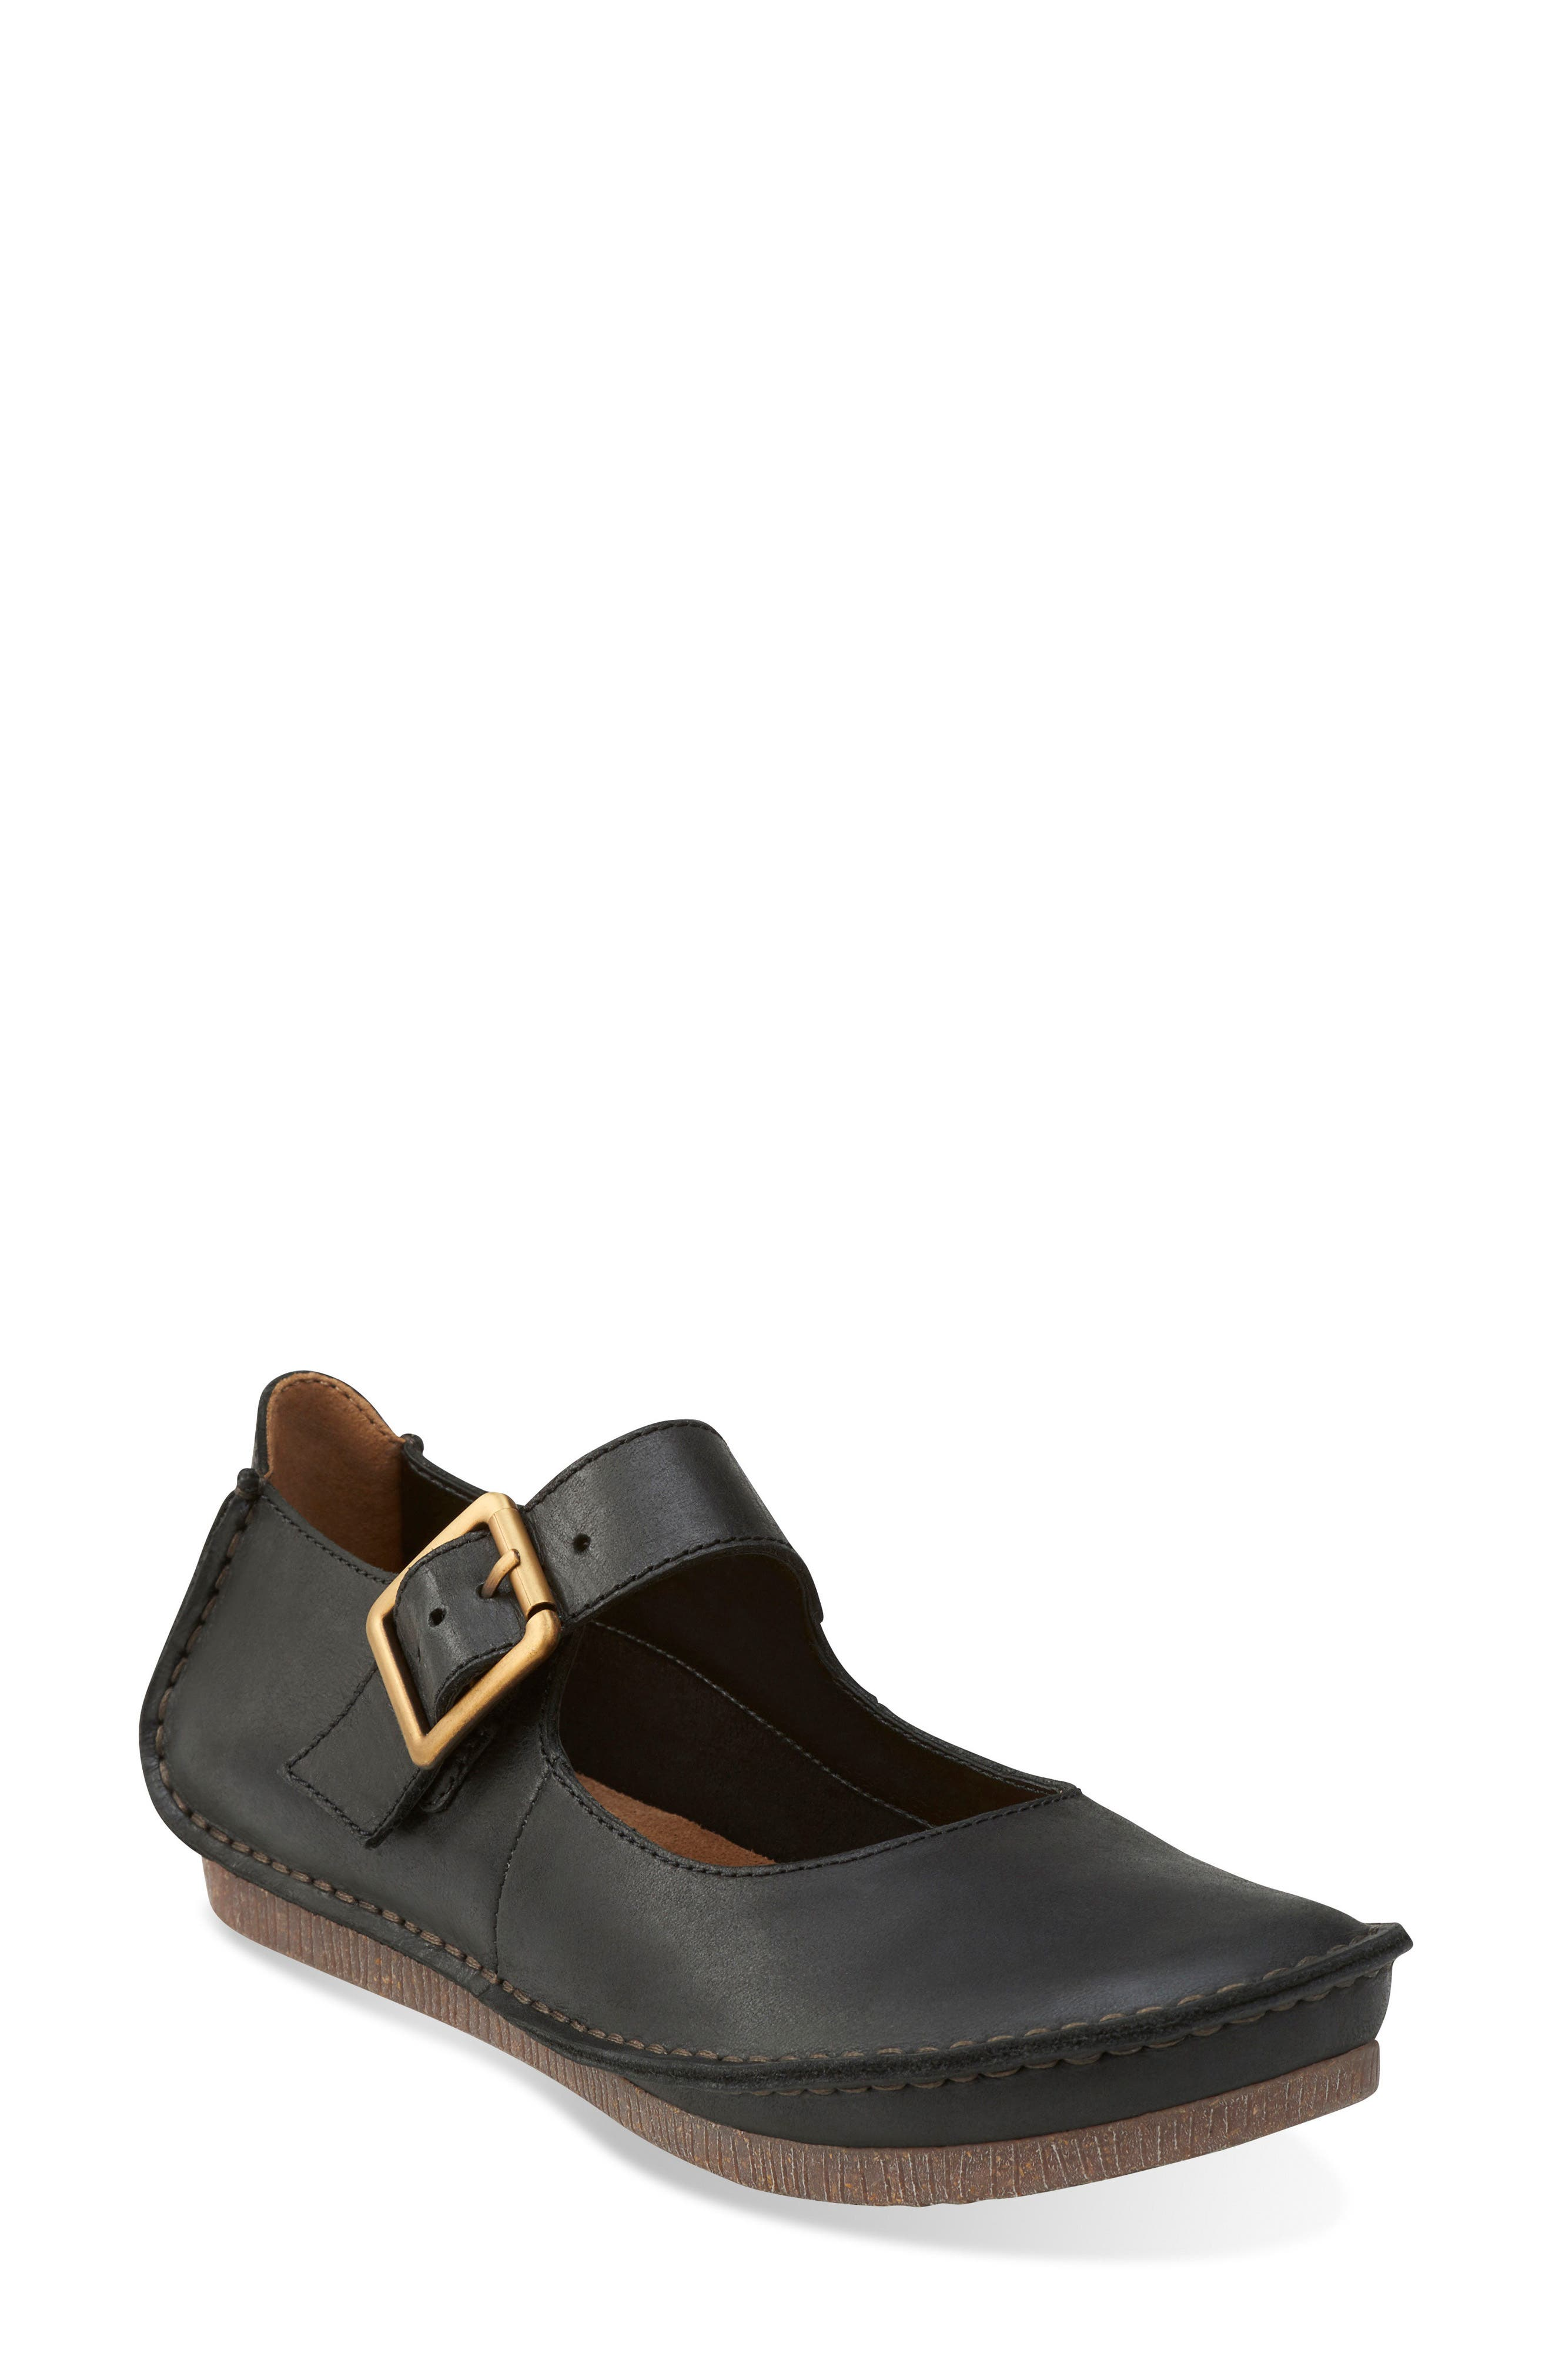 Janey June Mary Jane Flat,                         Main,                         color, 003